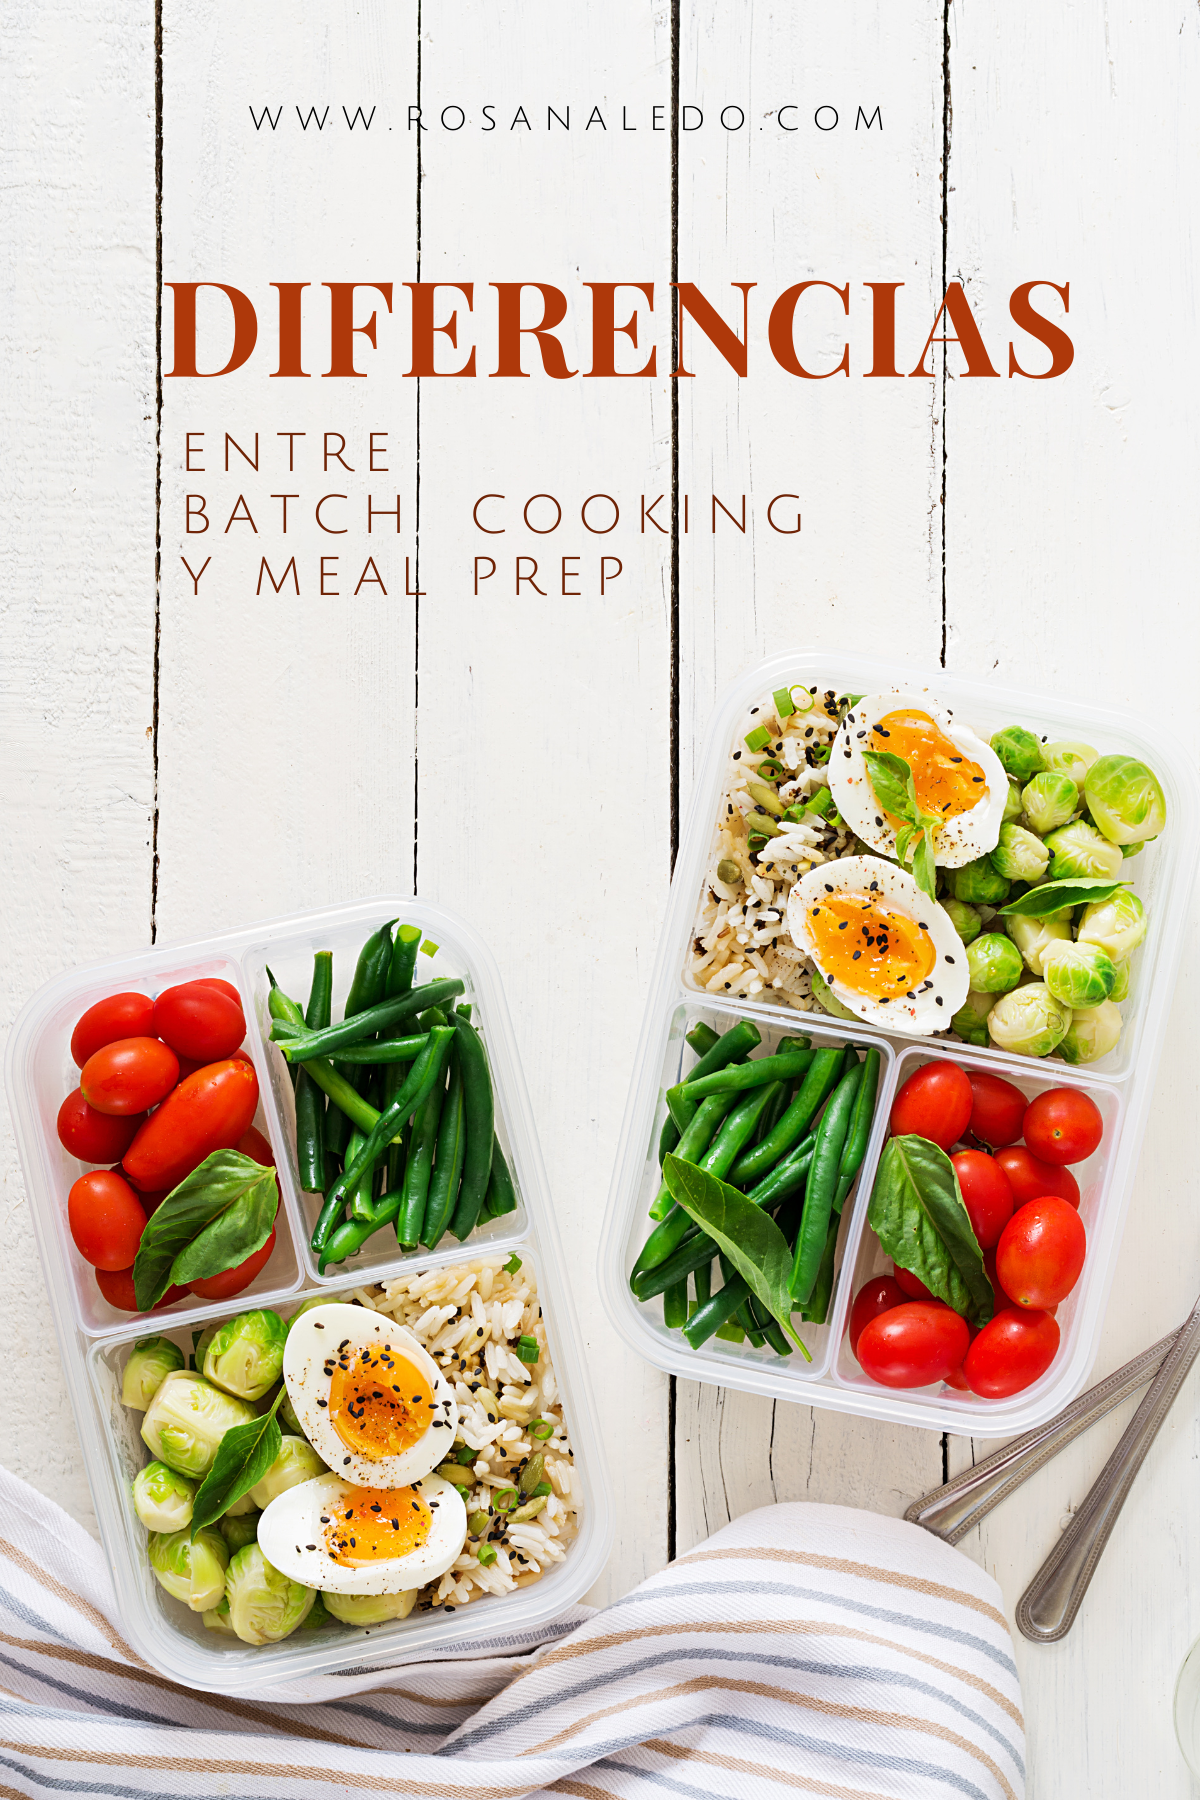 diferencias entre meal prep y batch cooking rosana ledo